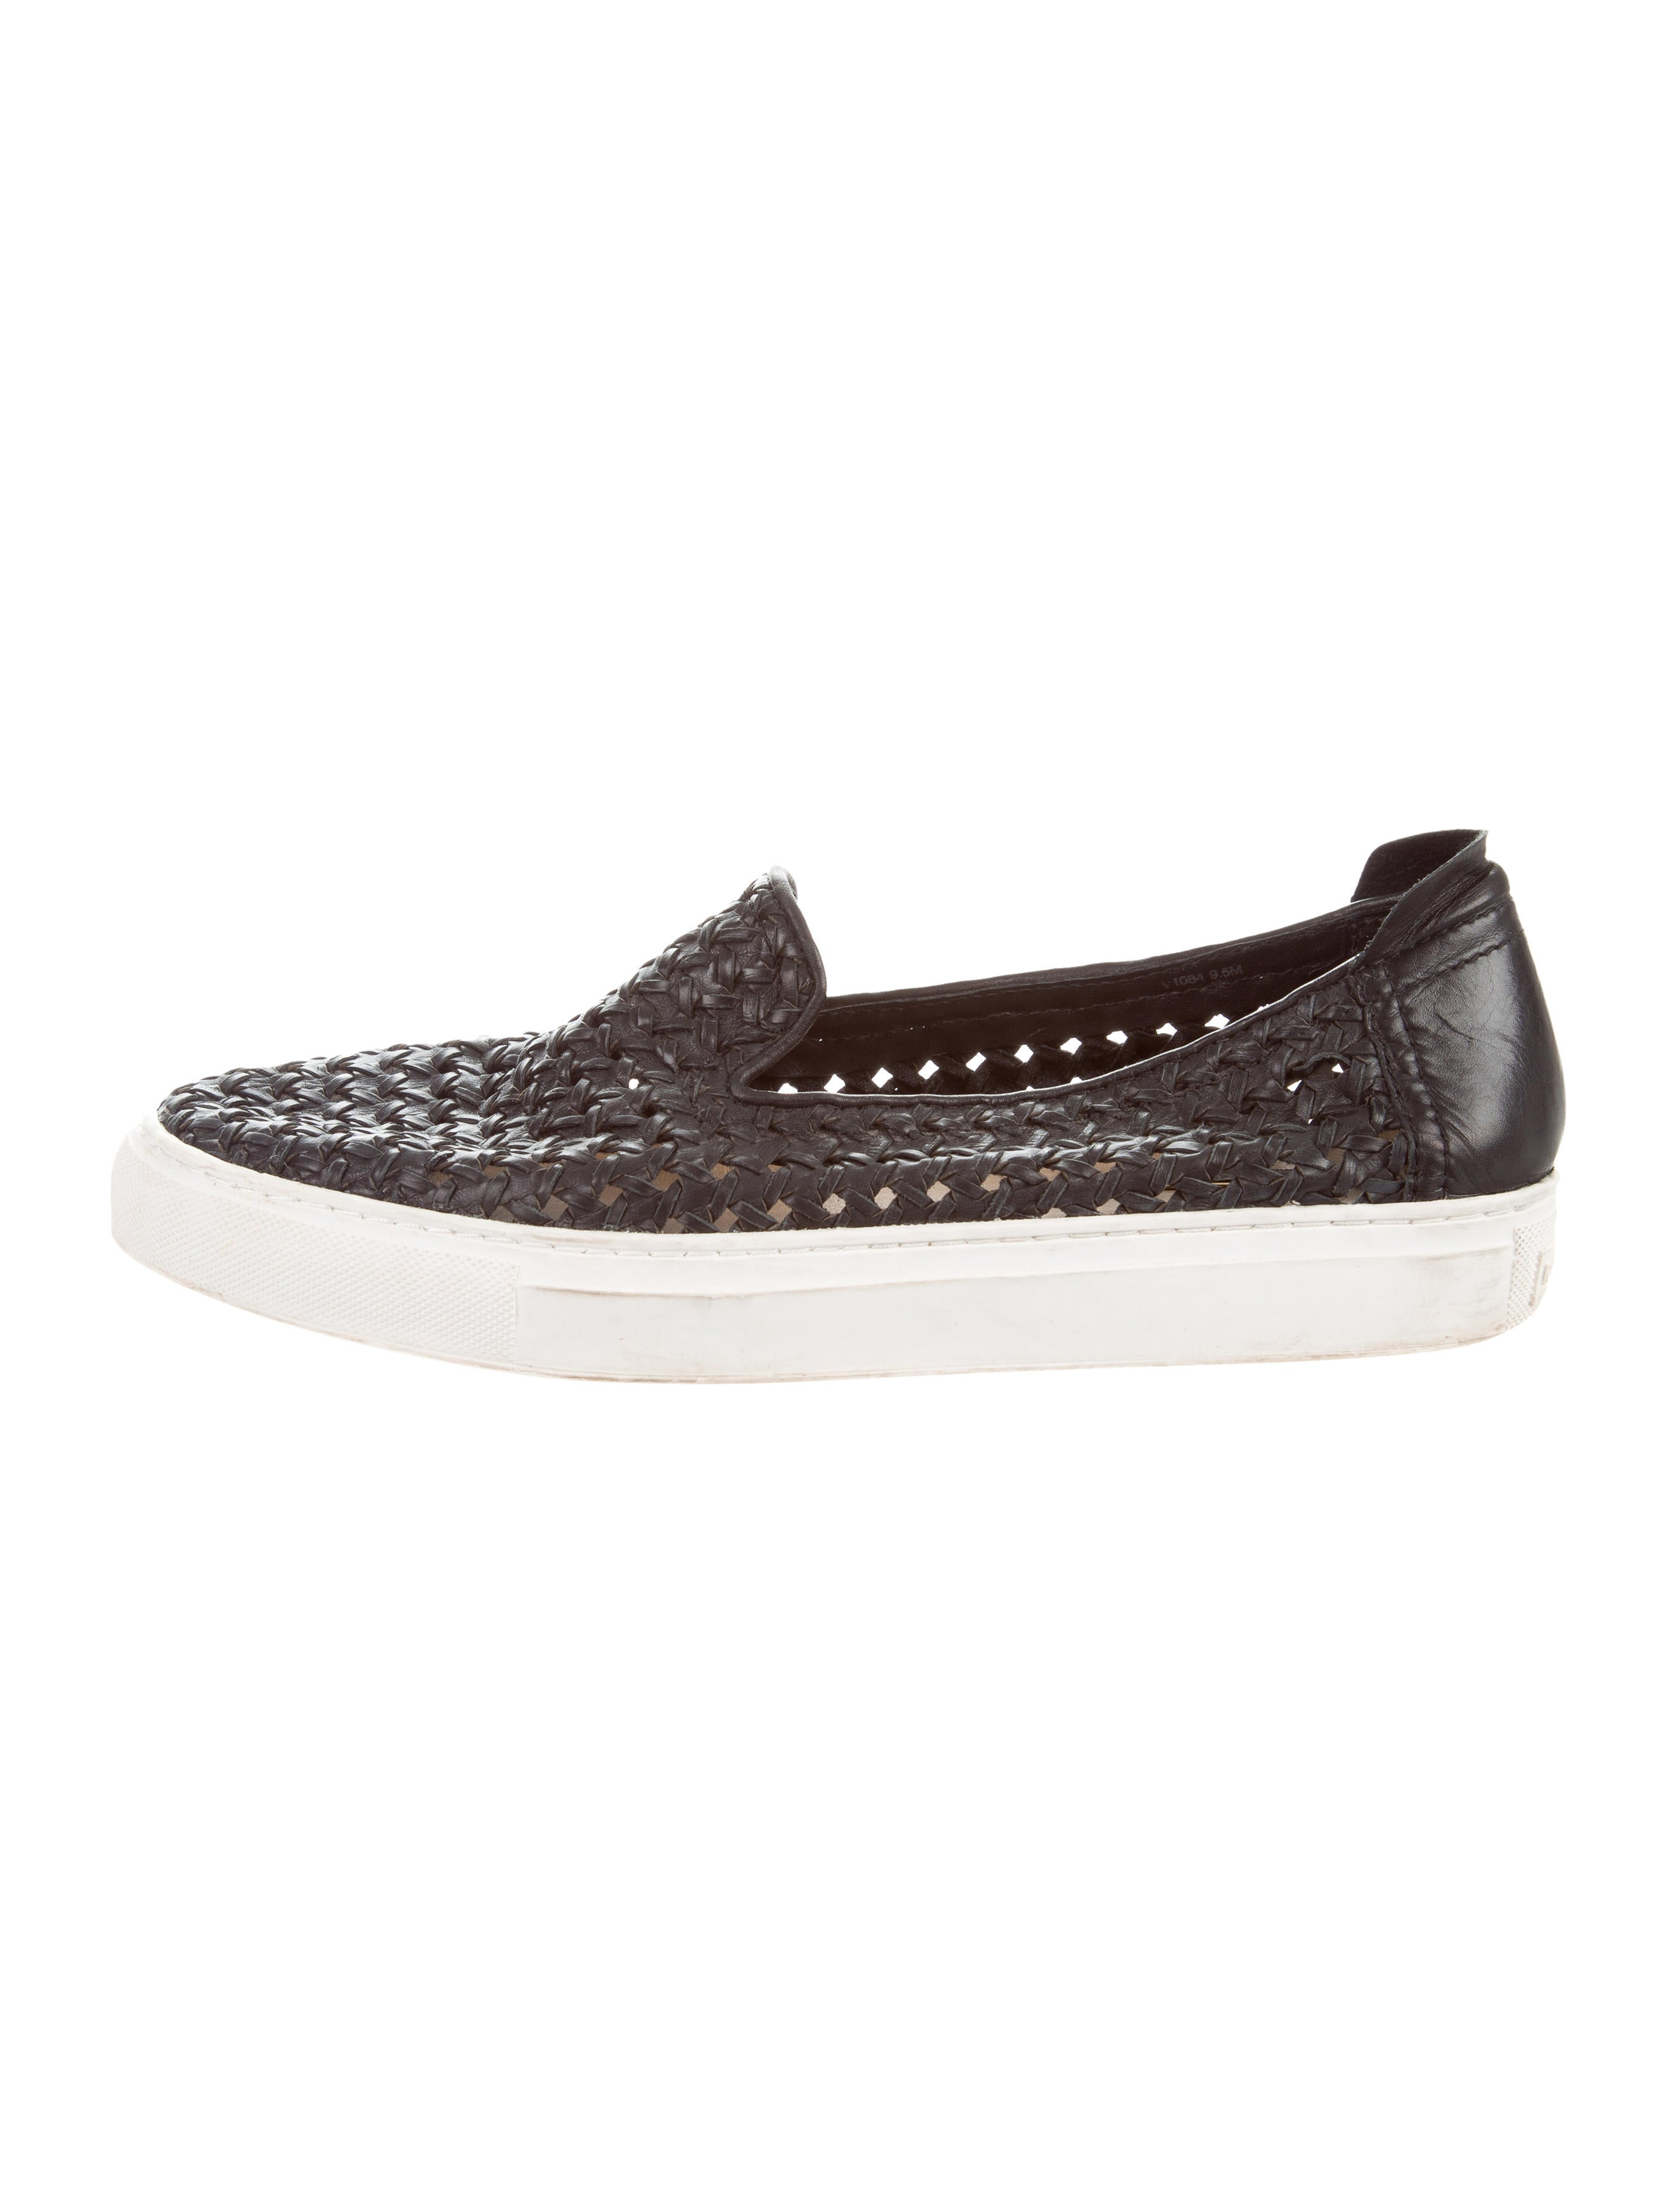 pay with paypal cheap price Rachel Zoe Woven Leather Slip-On Sneakers latest collections clearance best 7l3tthCN